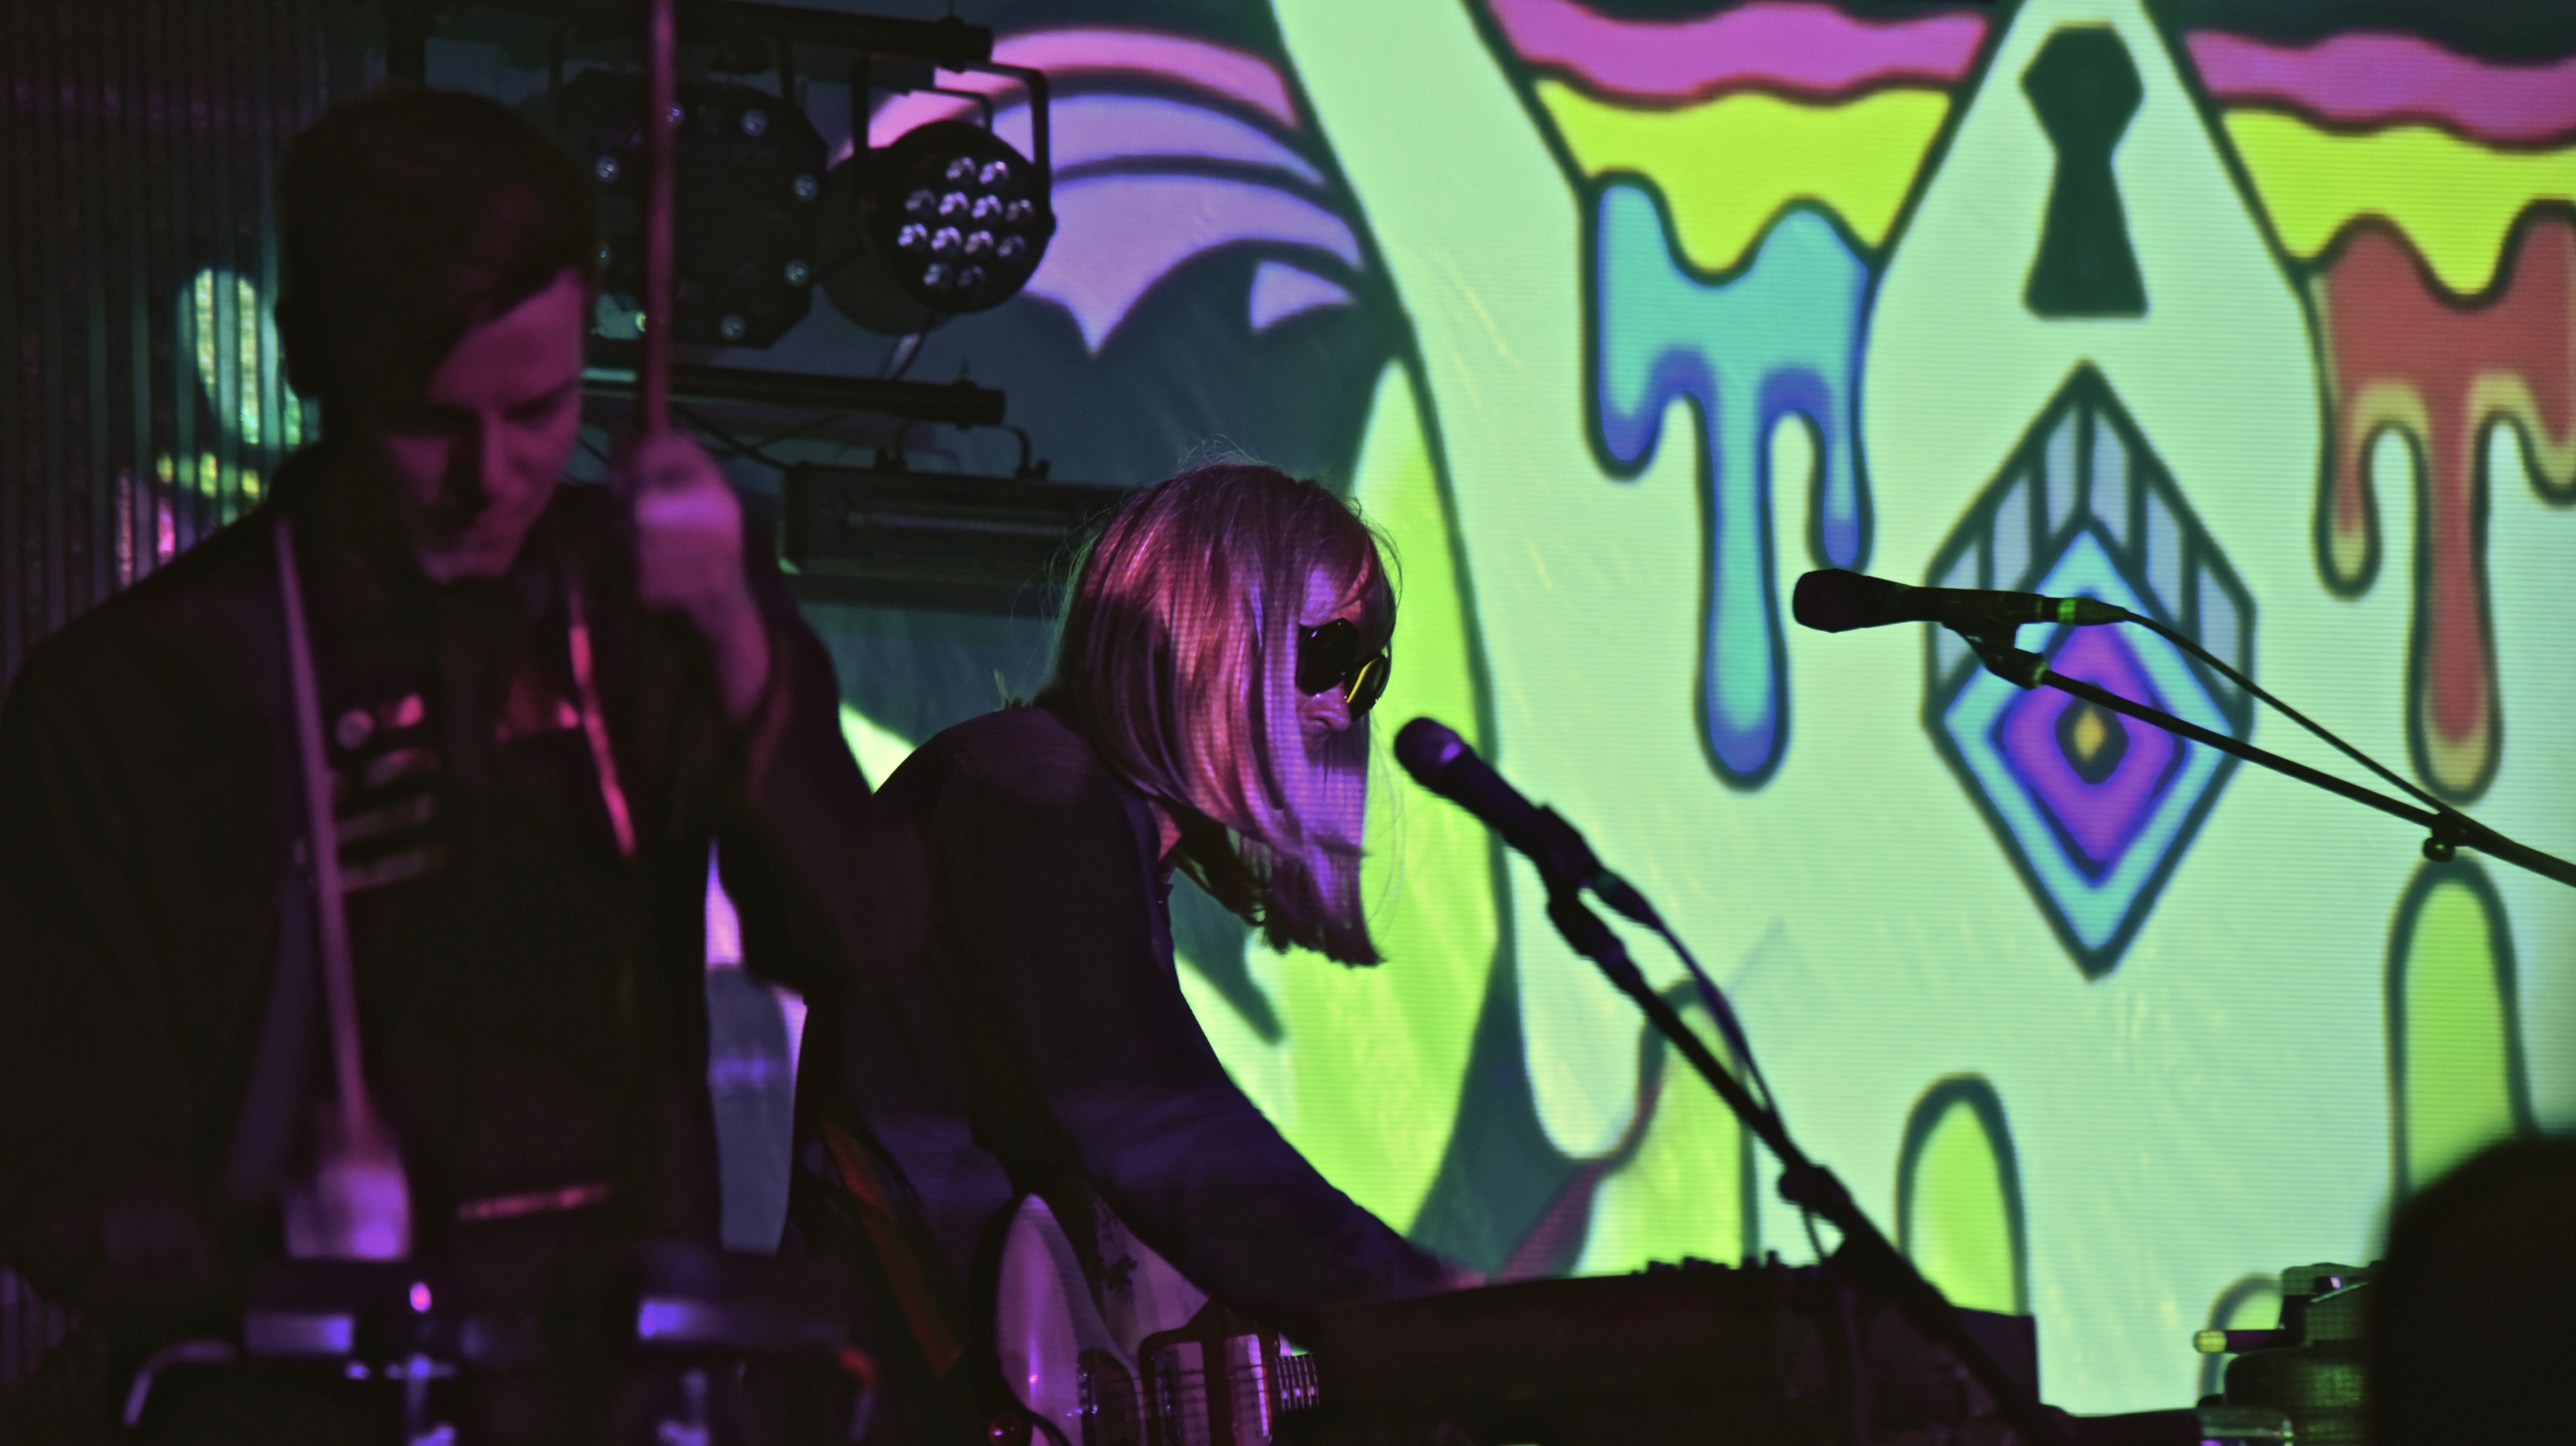 A man drumming next to a man in a blonde wig. There is a colorful background with a dripping slime pattern.